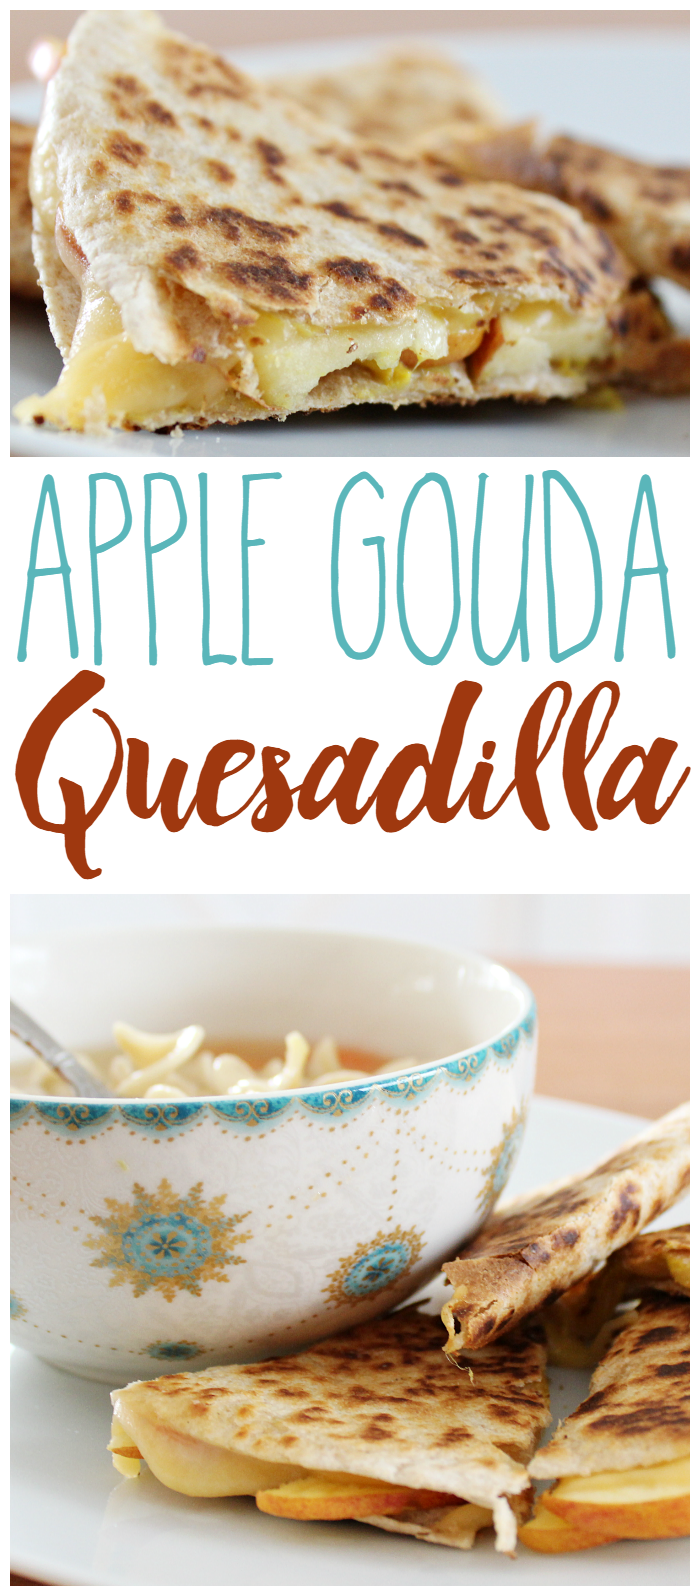 This Apple Gouda Quesadilla pairs perfectly with a hot bowl of soup for a quick, easy, and delicious meal!